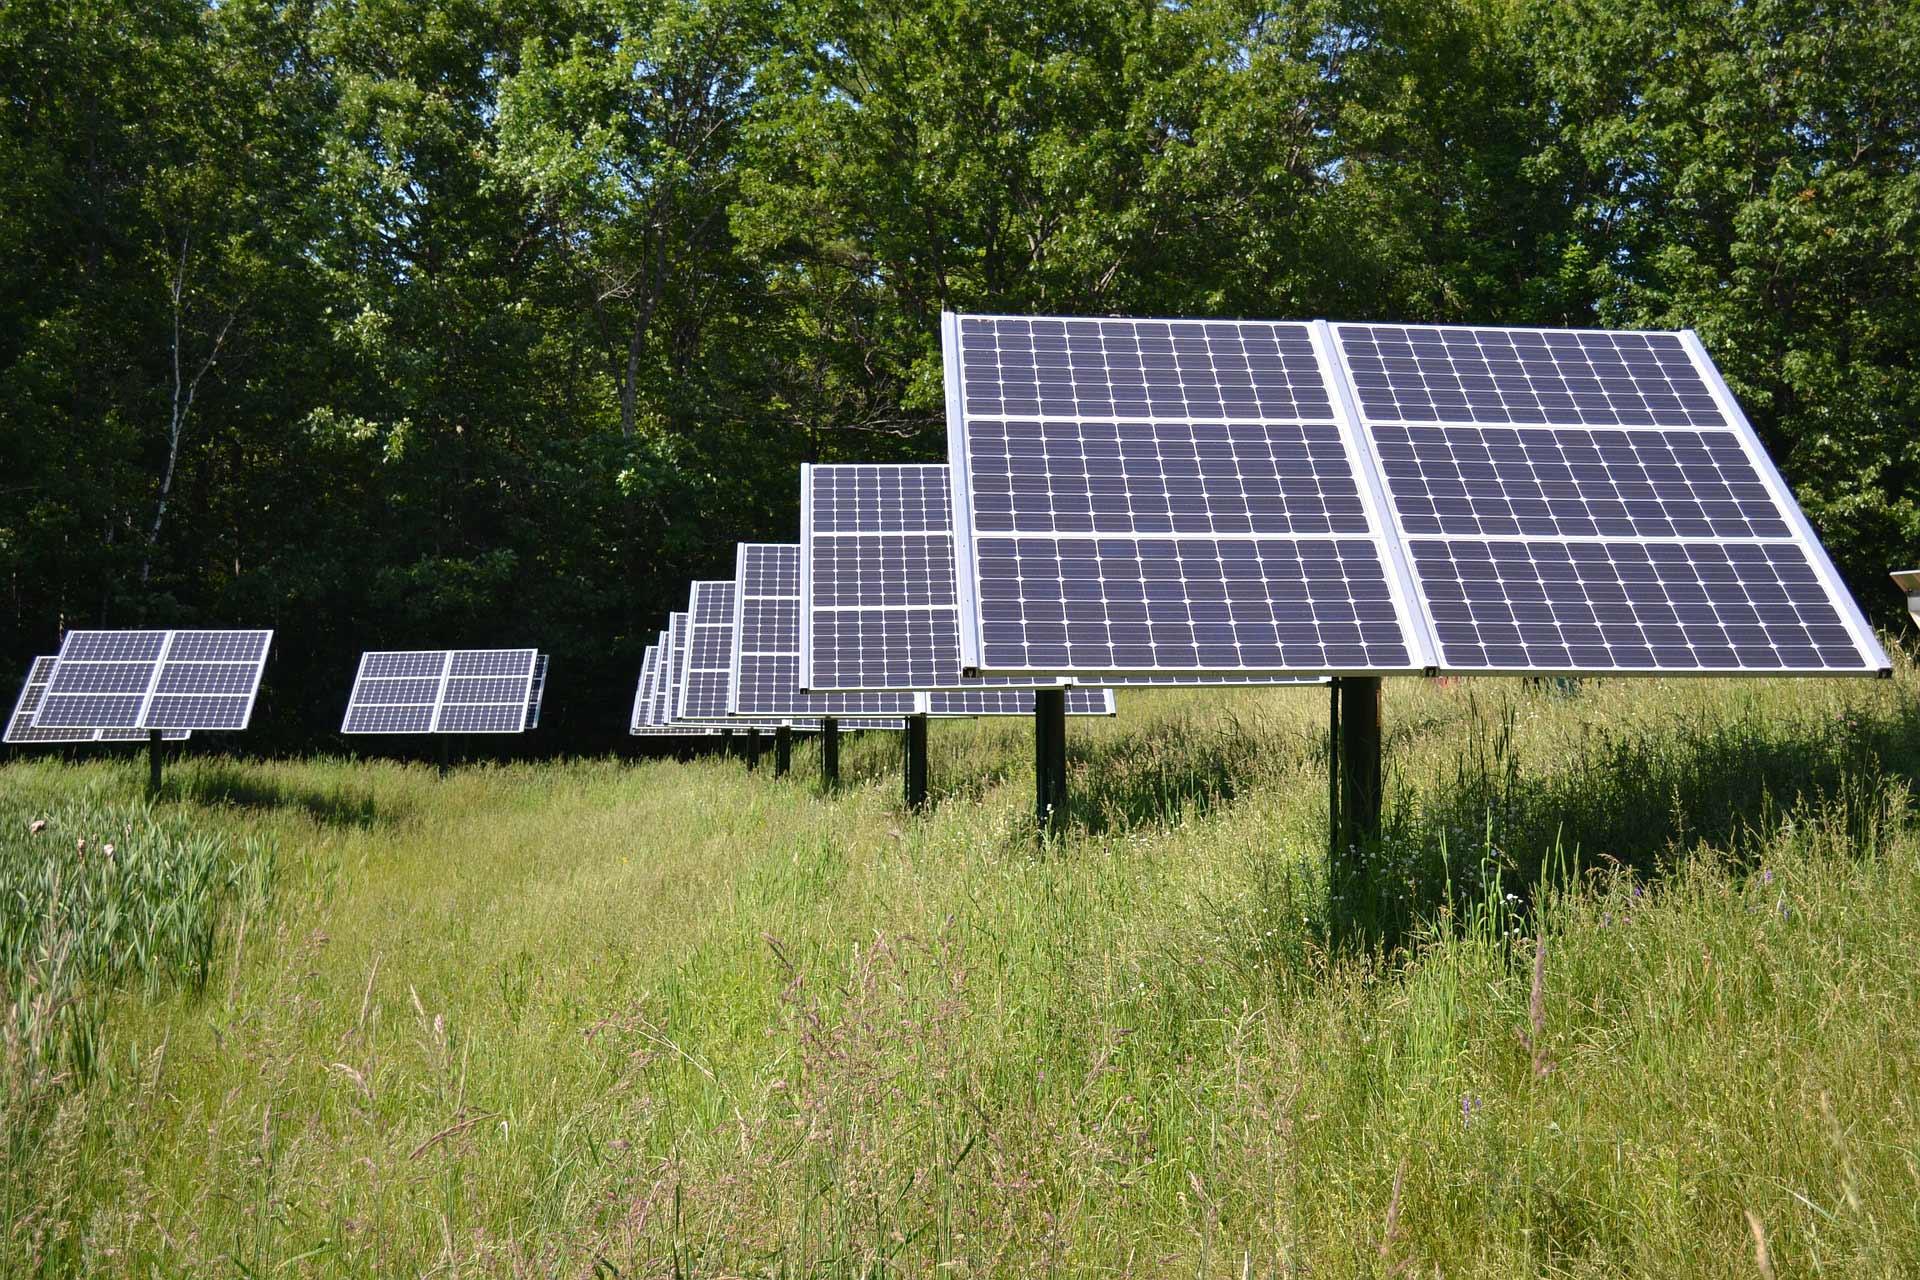 Local Public Authority-Owned Green Energy Supplier Loses Out to Big 6 Supplier